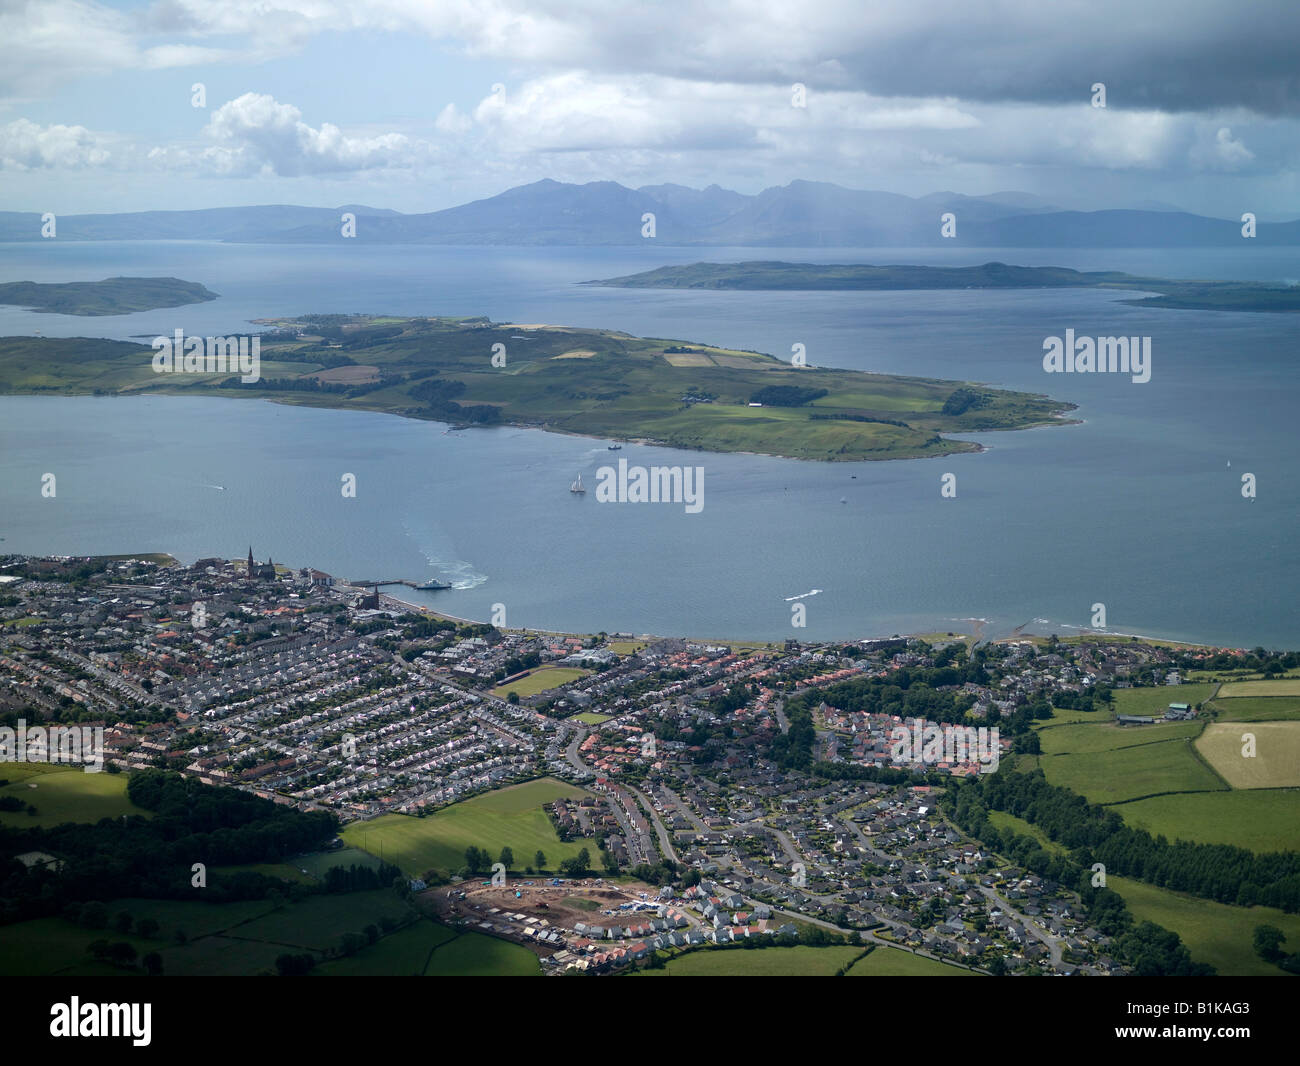 largs-and-little-cumbrae-island-in-the-c